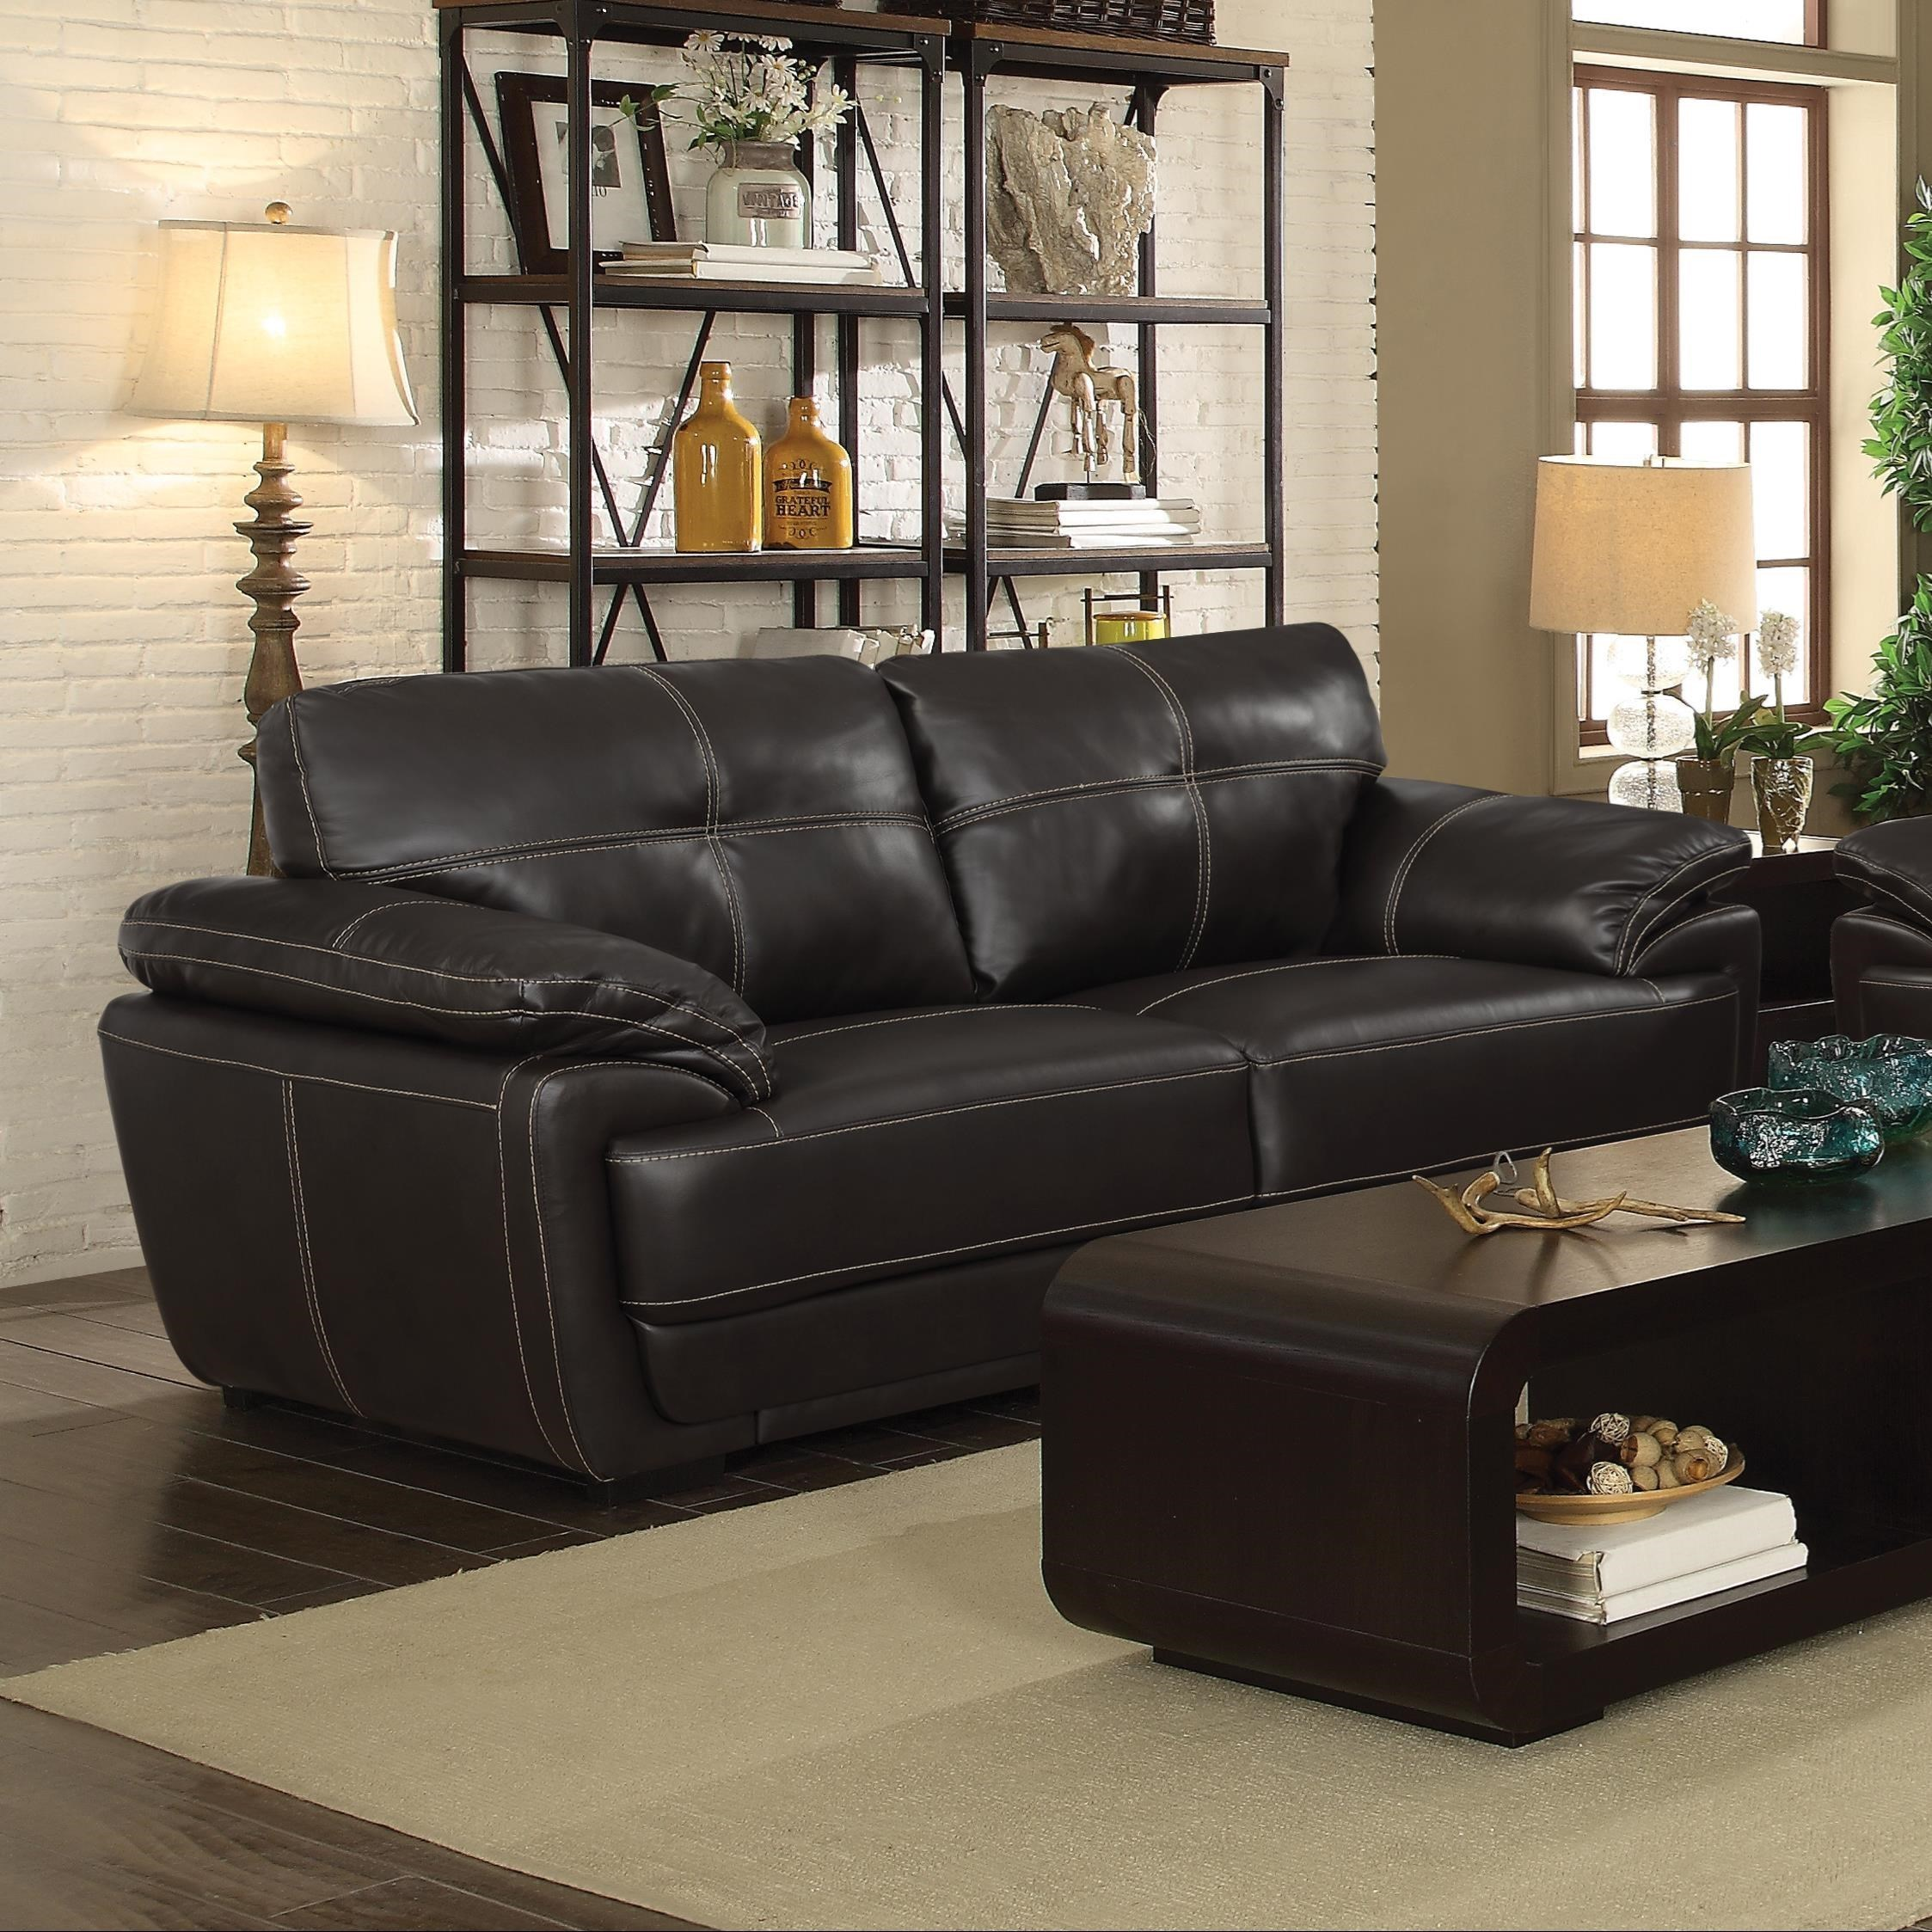 Furniture Websites With Free Shipping: Zenon Brown Sofa + Free Shipping! CLEARANCE SALE